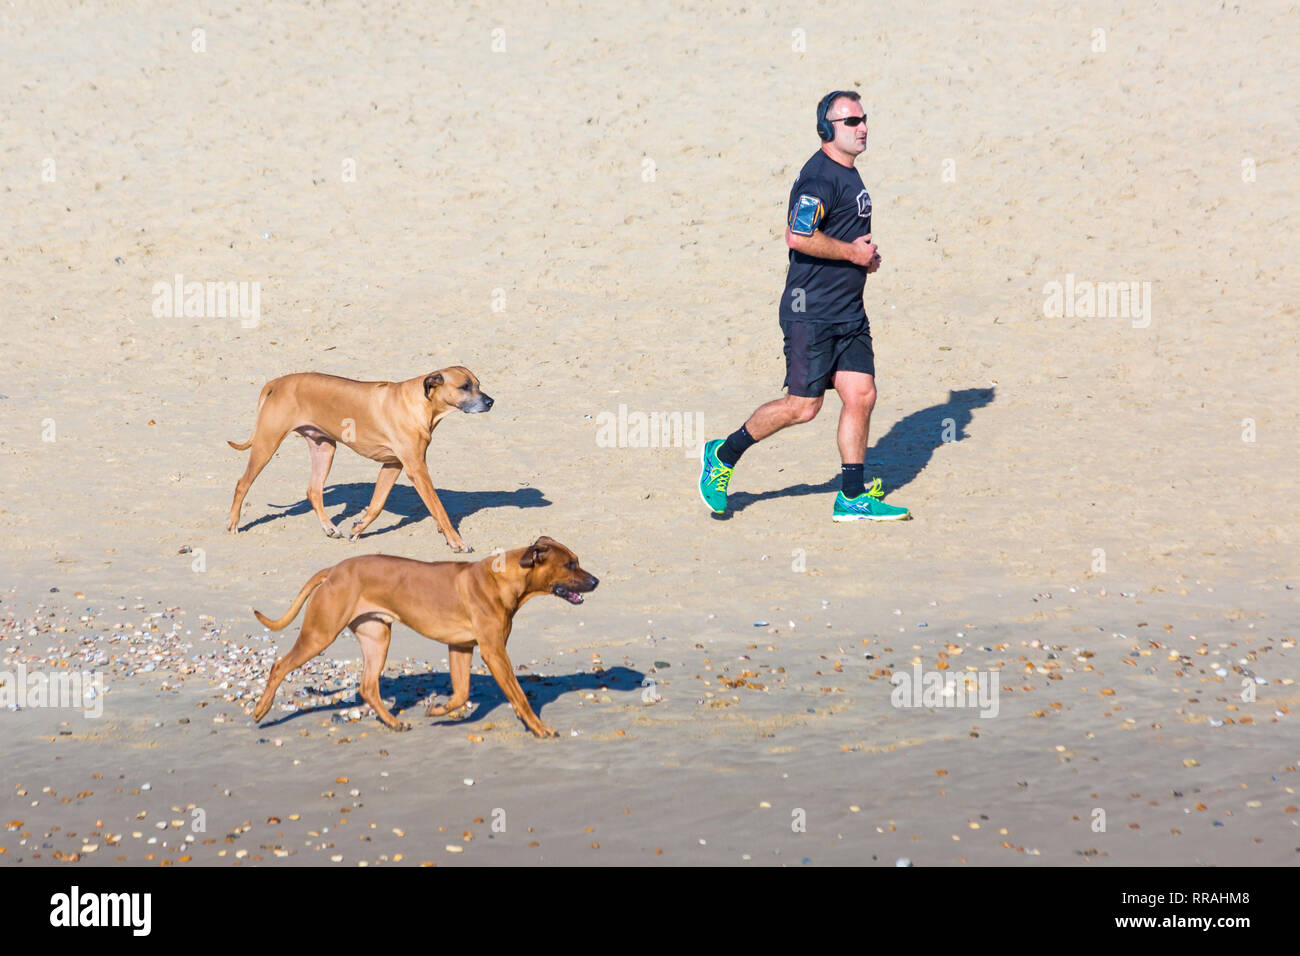 Bournemouth, Dorset, UK. 25th Feb, 2019. UK weather: another lovely warm sunny day at Bournemouth as visitors enjoy the sunshine at the beach on the hottest day of the year so far and hottest February day ever. Man running along seashore with dogs. Credit: Carolyn Jenkins/Alamy Live News Stock Photo